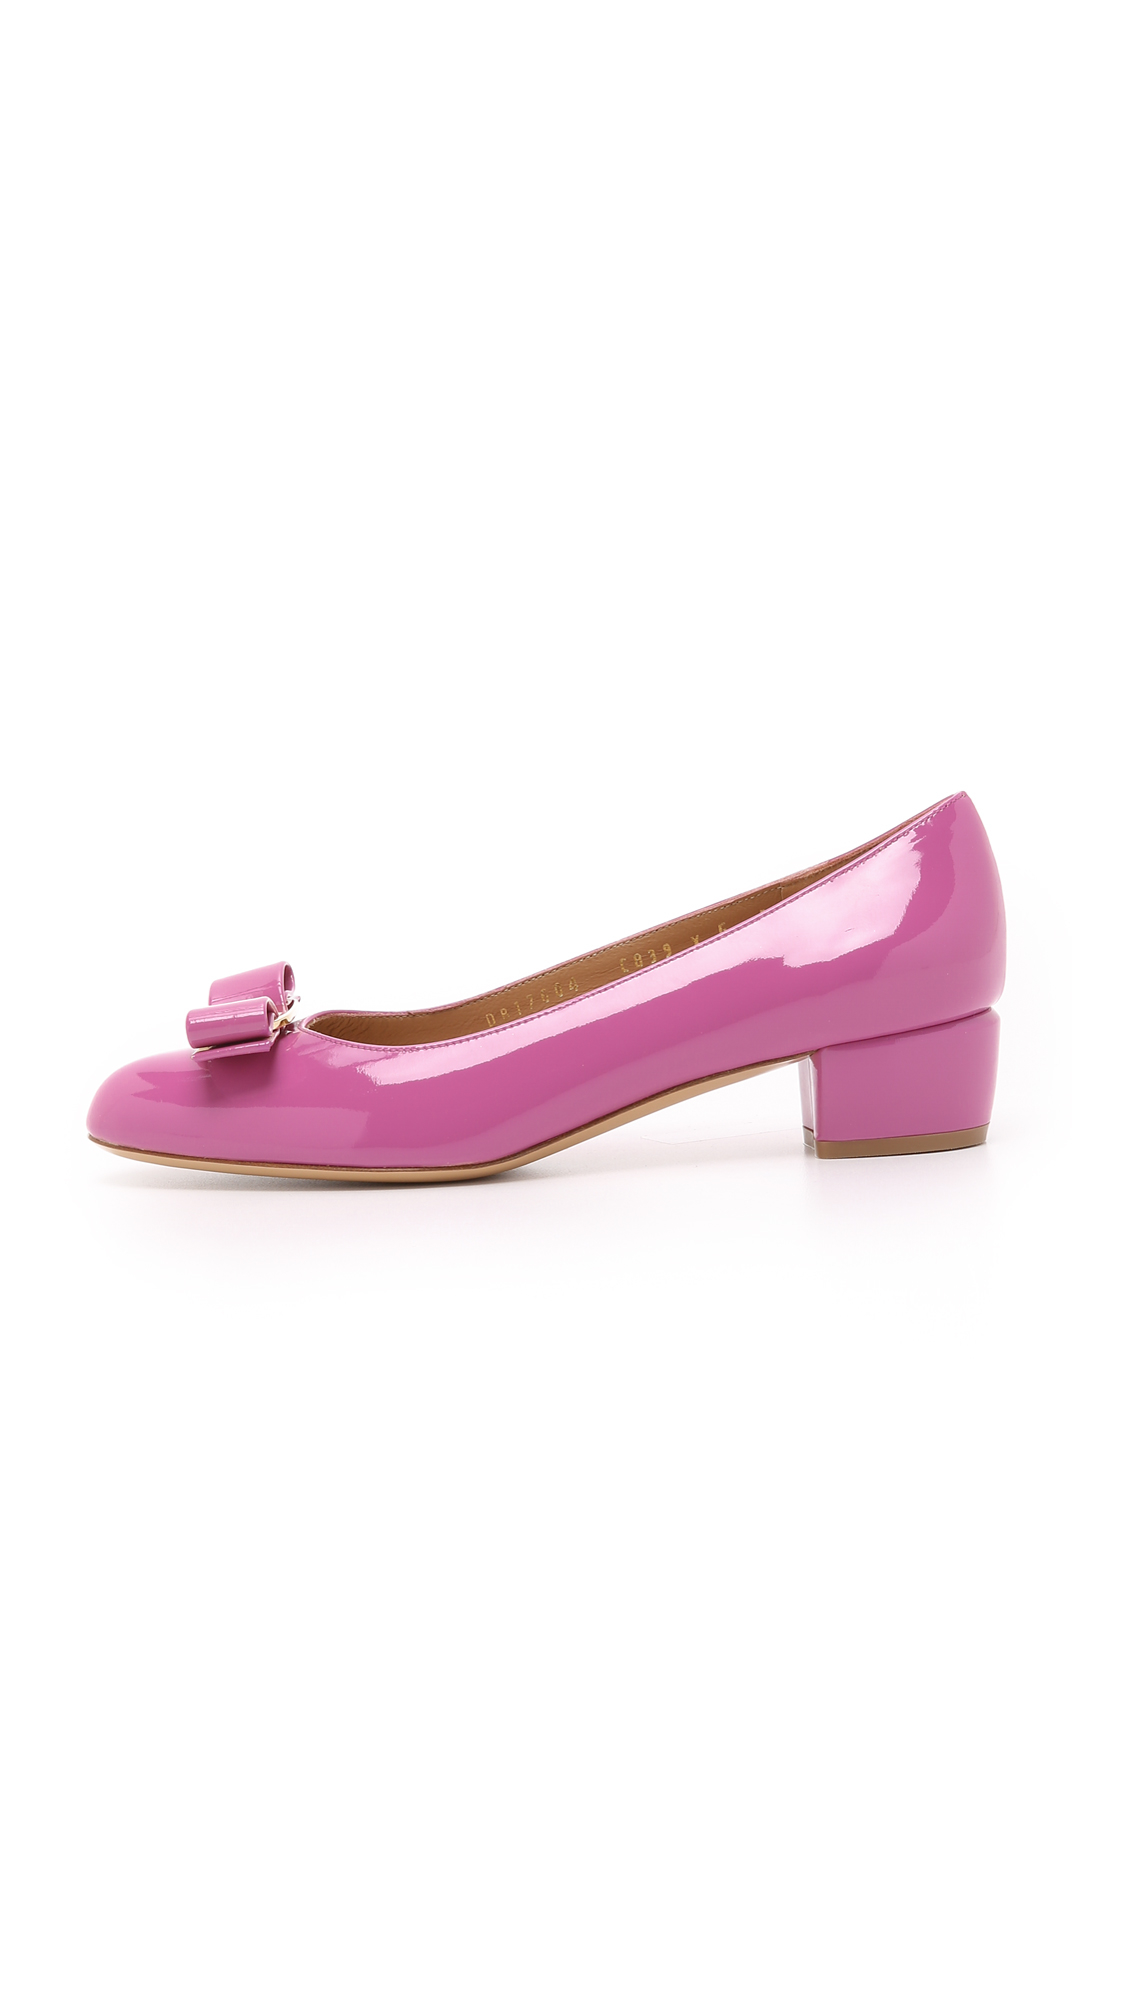 Purple Pumps Low Heel